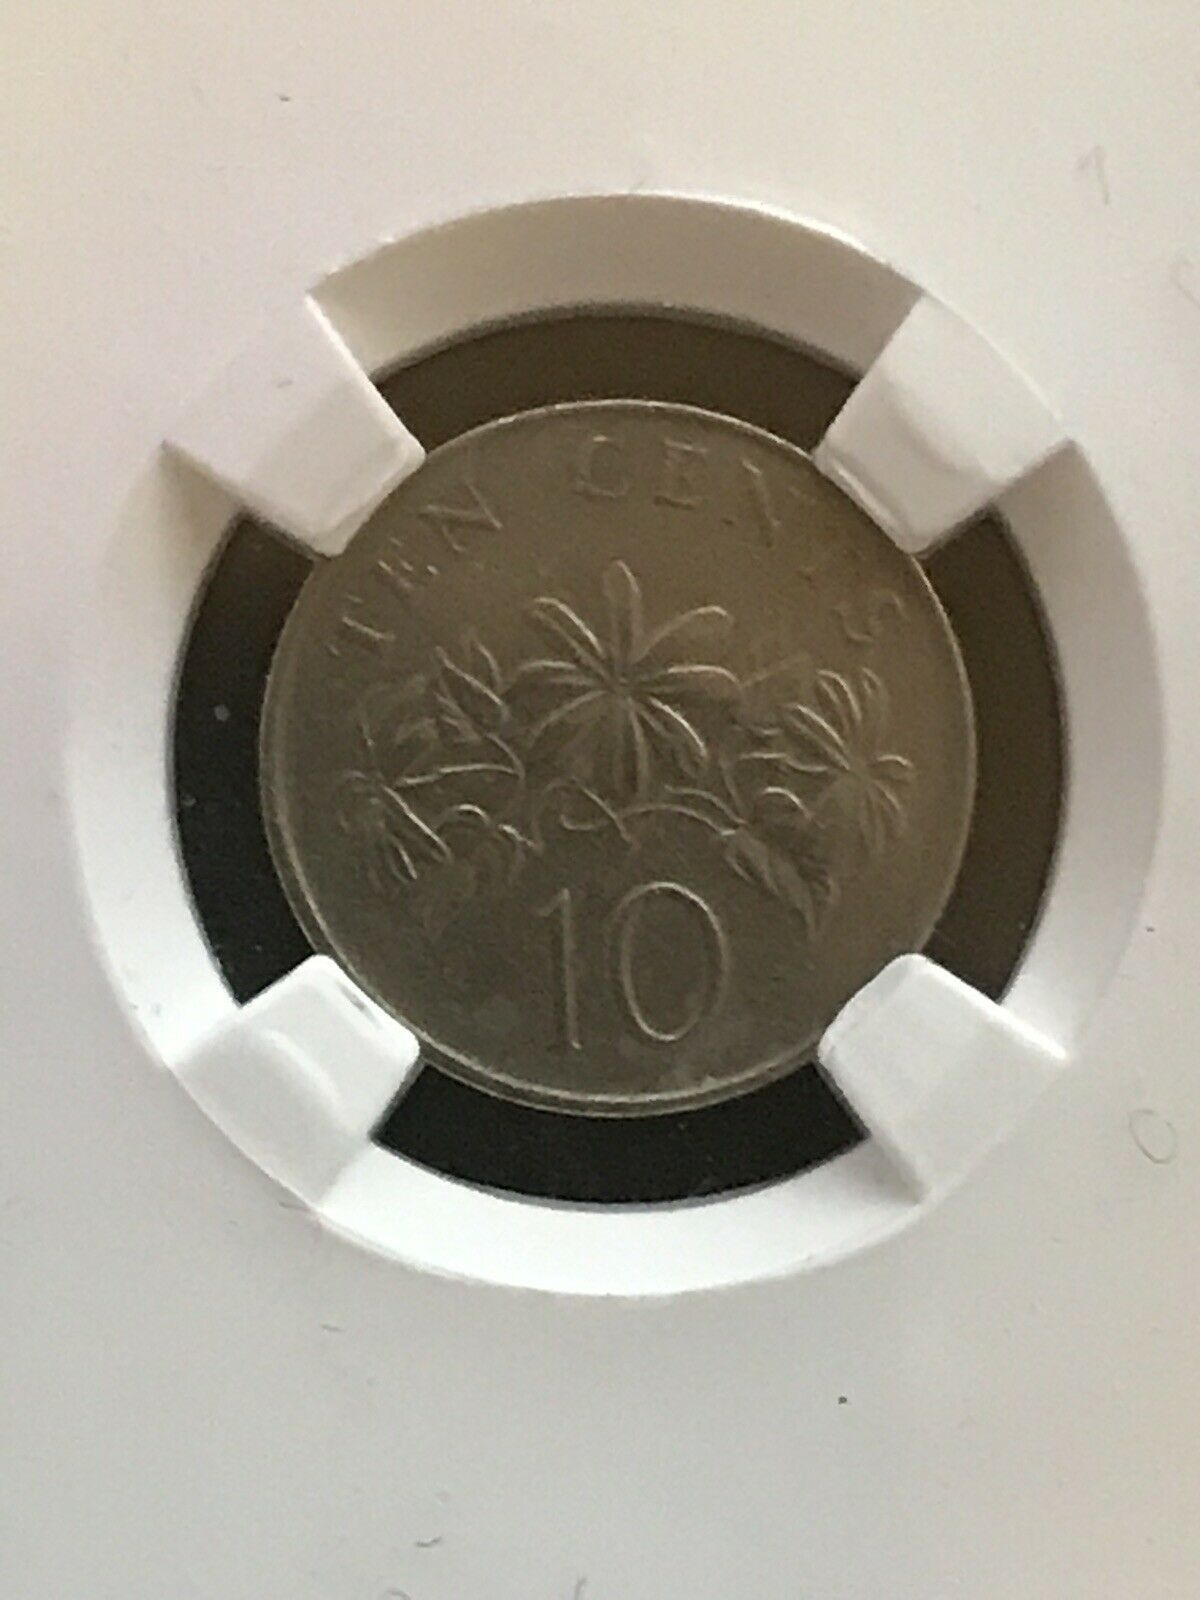 Primary image for 1986 Singapore 10cents Coin KM# 51